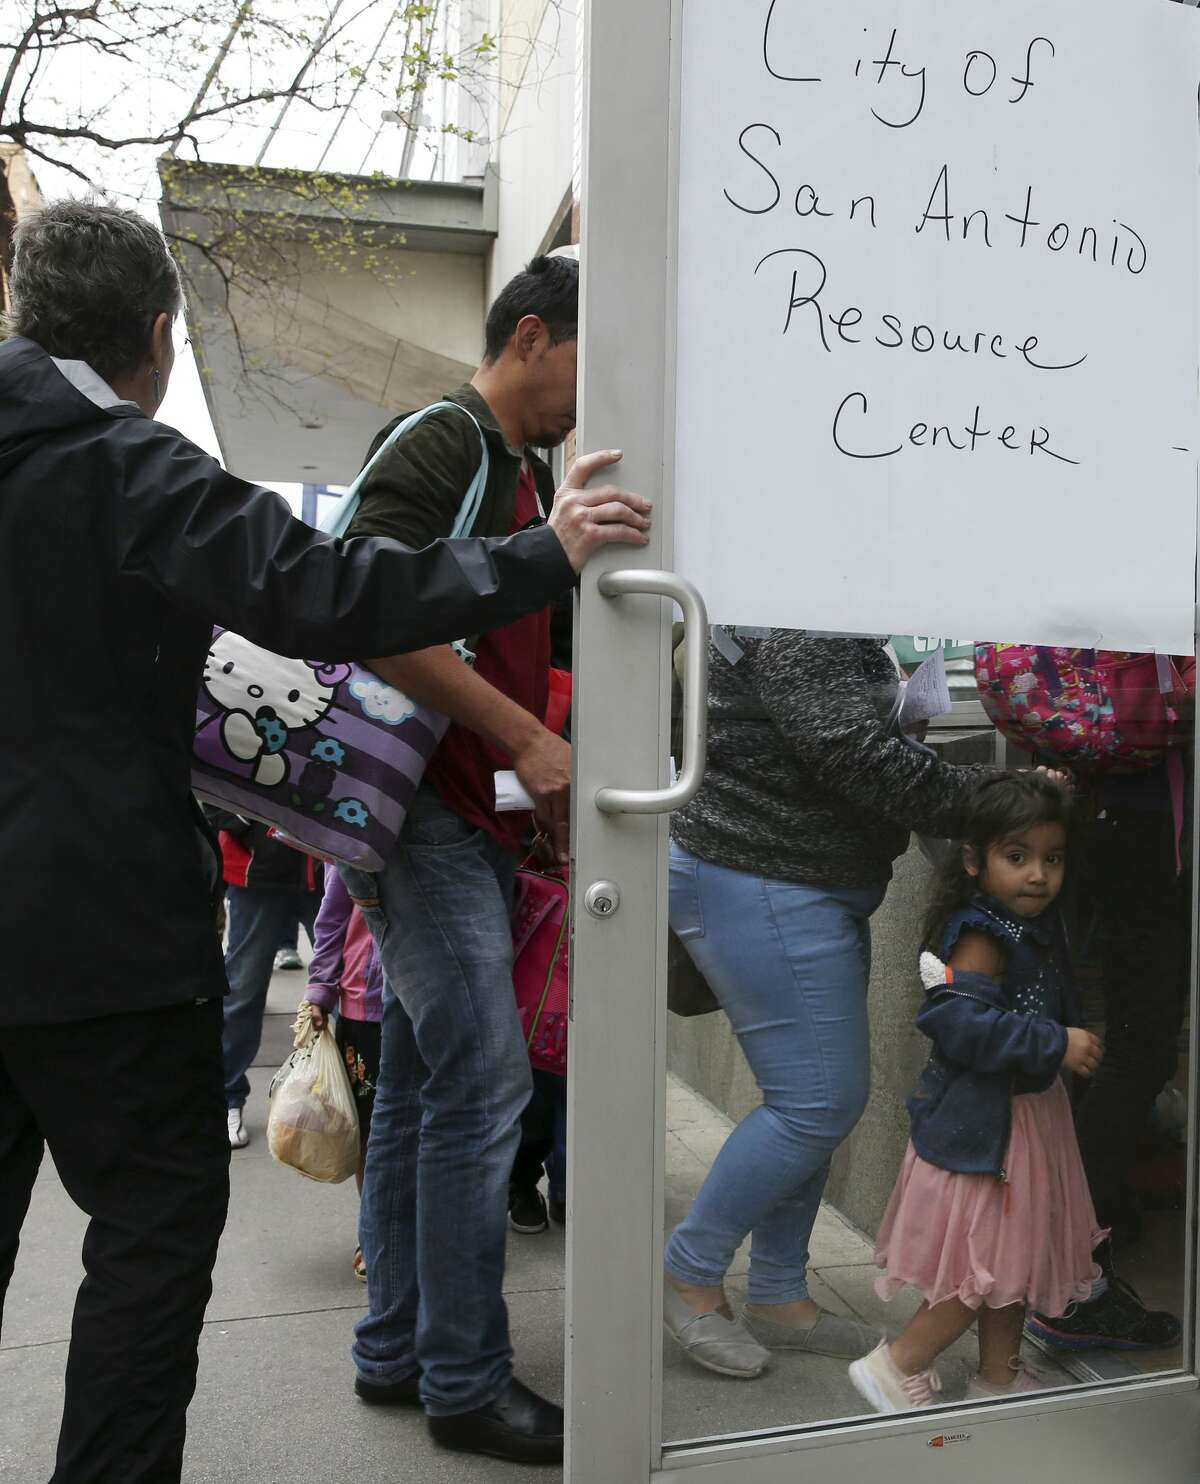 Central American immigrants are led into the City of San Antonio Resource Center from the Greyhound Bus, Monday, April 1, 2019. The center provides food and shelter for immigrants waiting to board buses to their final destination. The center is located on city-owned property across the street from the Greyhound Bus depot. It opened Saturday evening in response to an increase of immigrants dropped off at the depot by Department of Homeland Security. According to Assistant City Manager Colleen Bridger, the center has processed between 75-100 immigrants daily and is opened from 6 a.m. to 10 p.m.